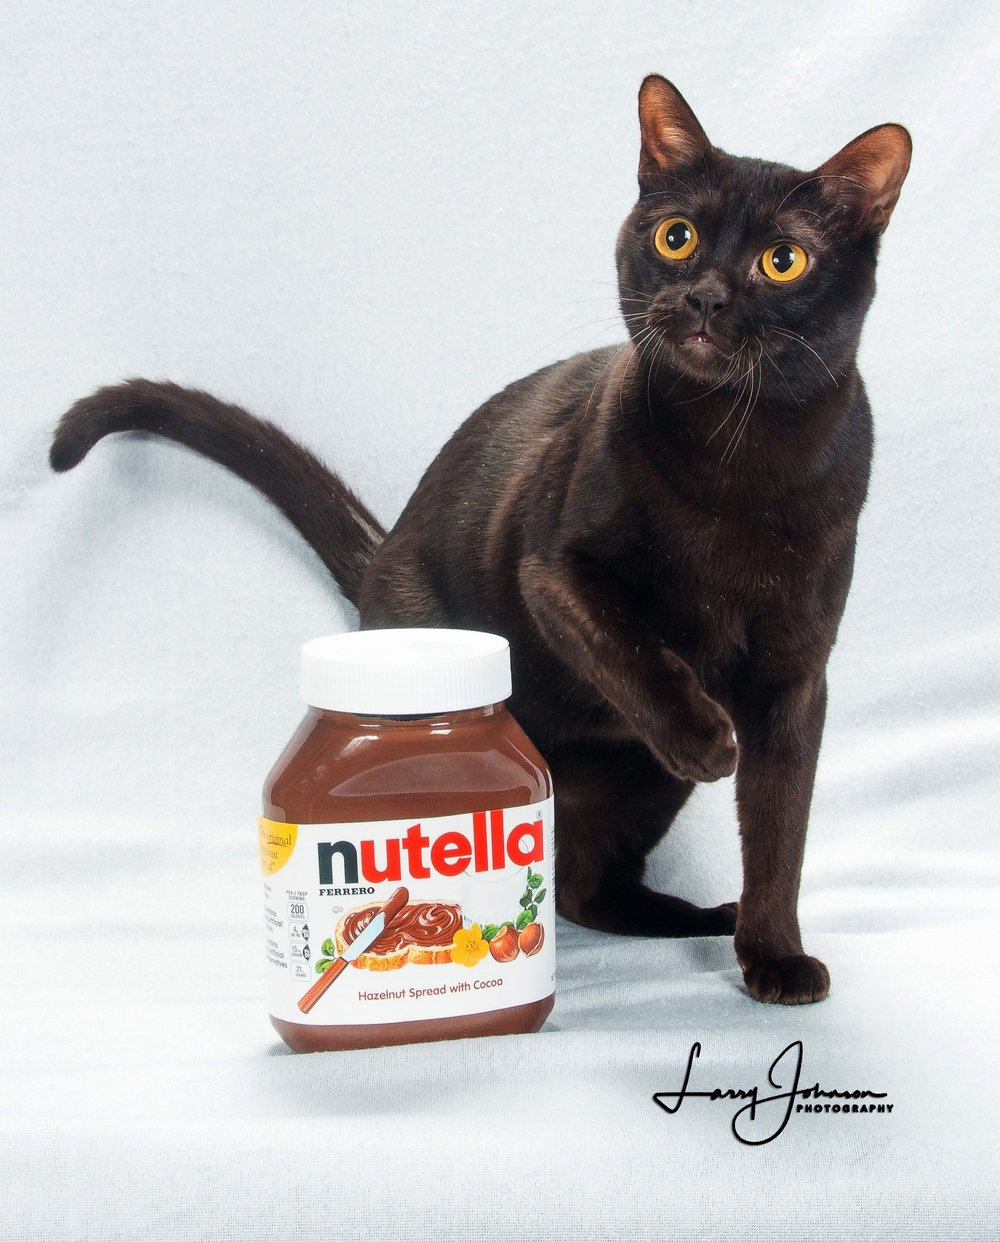 Nutella  Photo by Larry Johnson